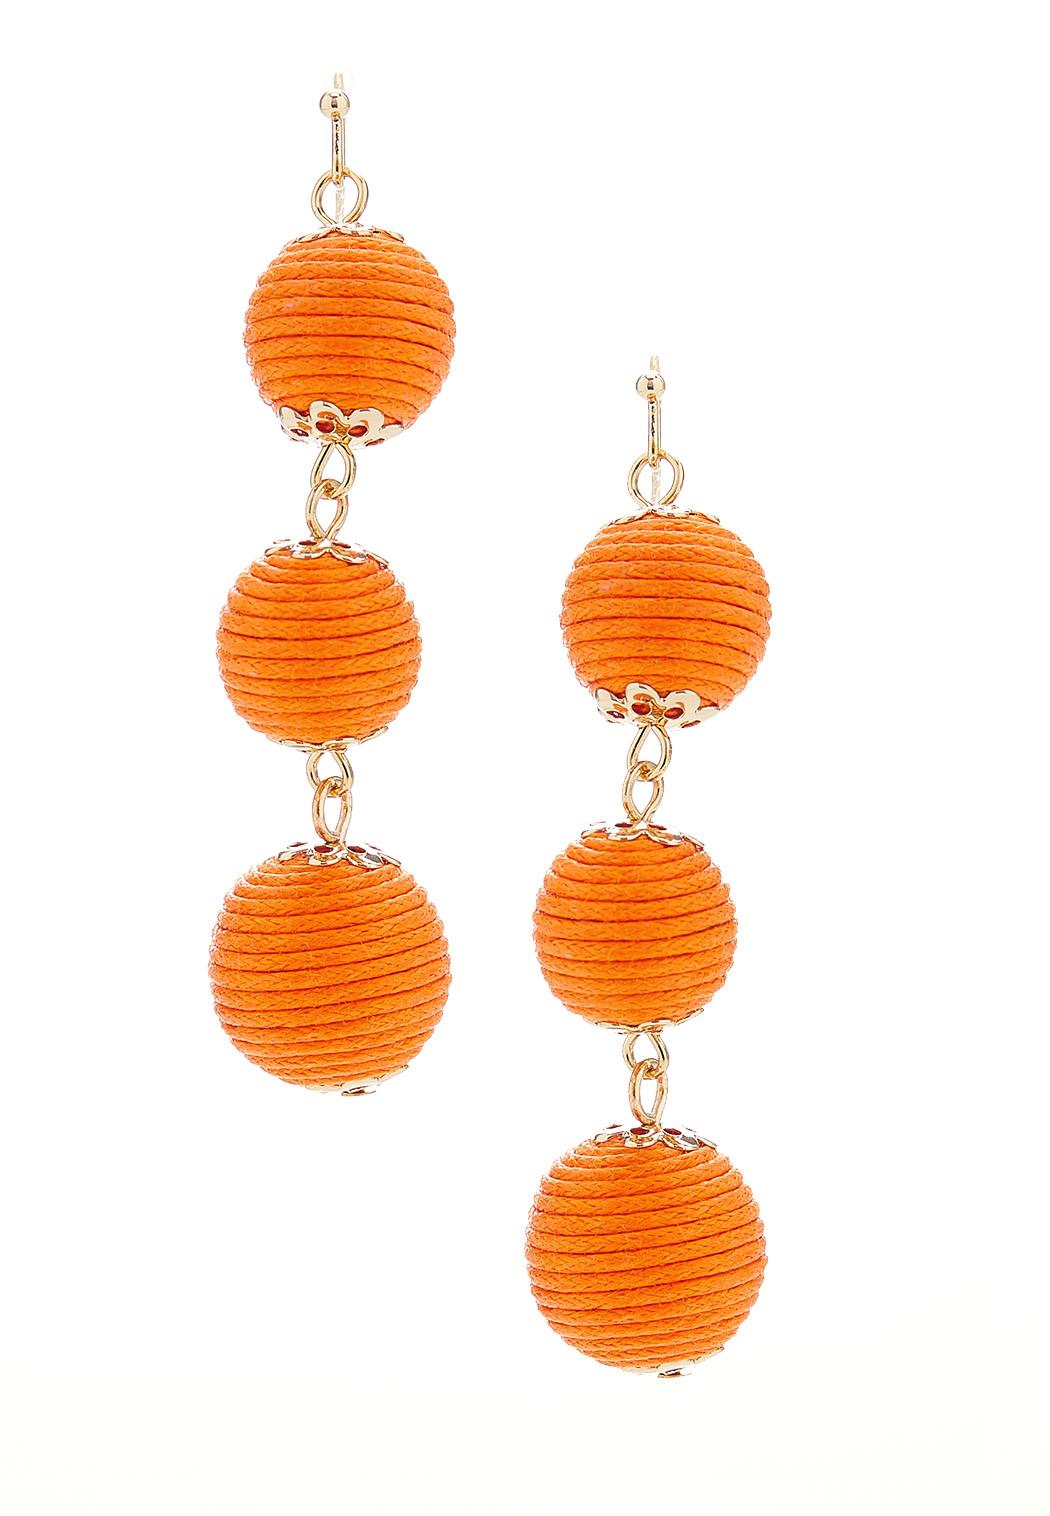 Thread Wrapped Linear Ball Earrings